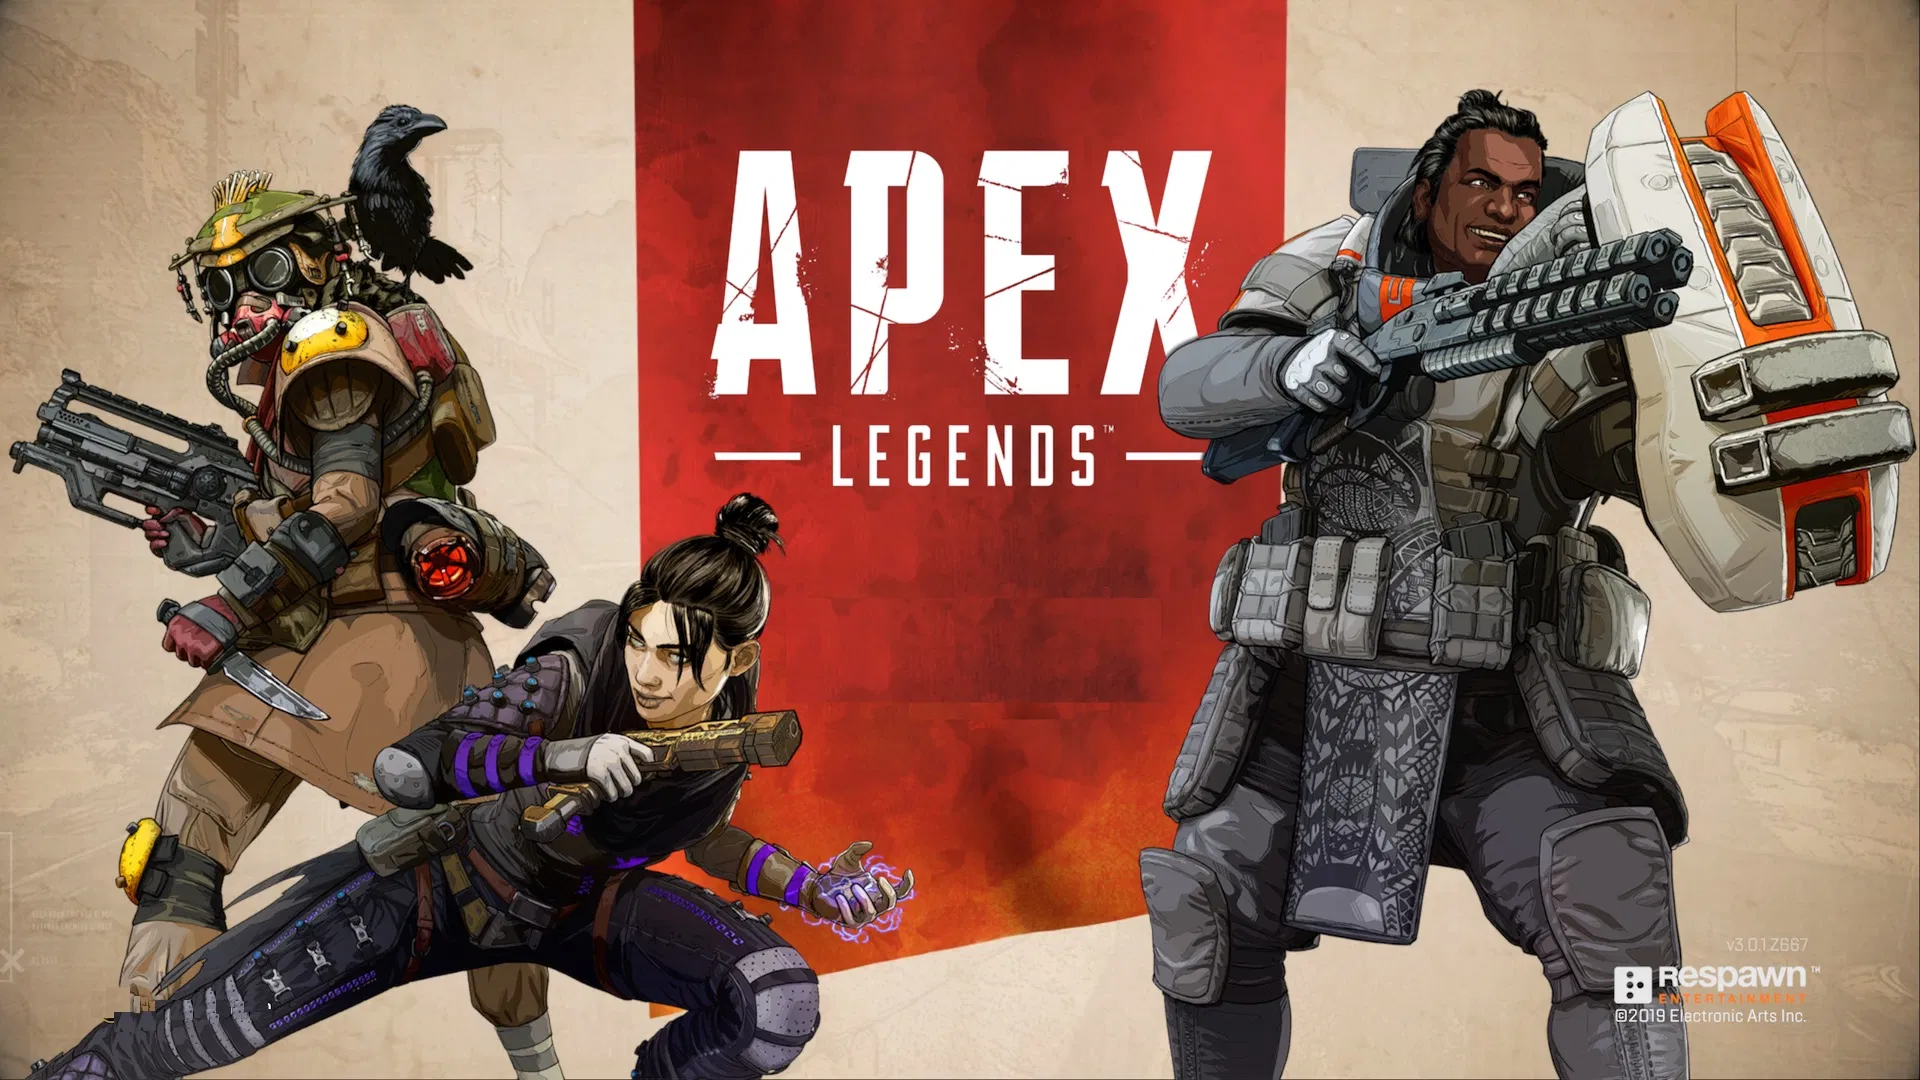 [FPS Benchmarks] Apex Legends on NVIDIA GeForce GTX 1650 [40W and 50W] – even the smaller GPU can go beyond the 60 FPS mark on Max quality